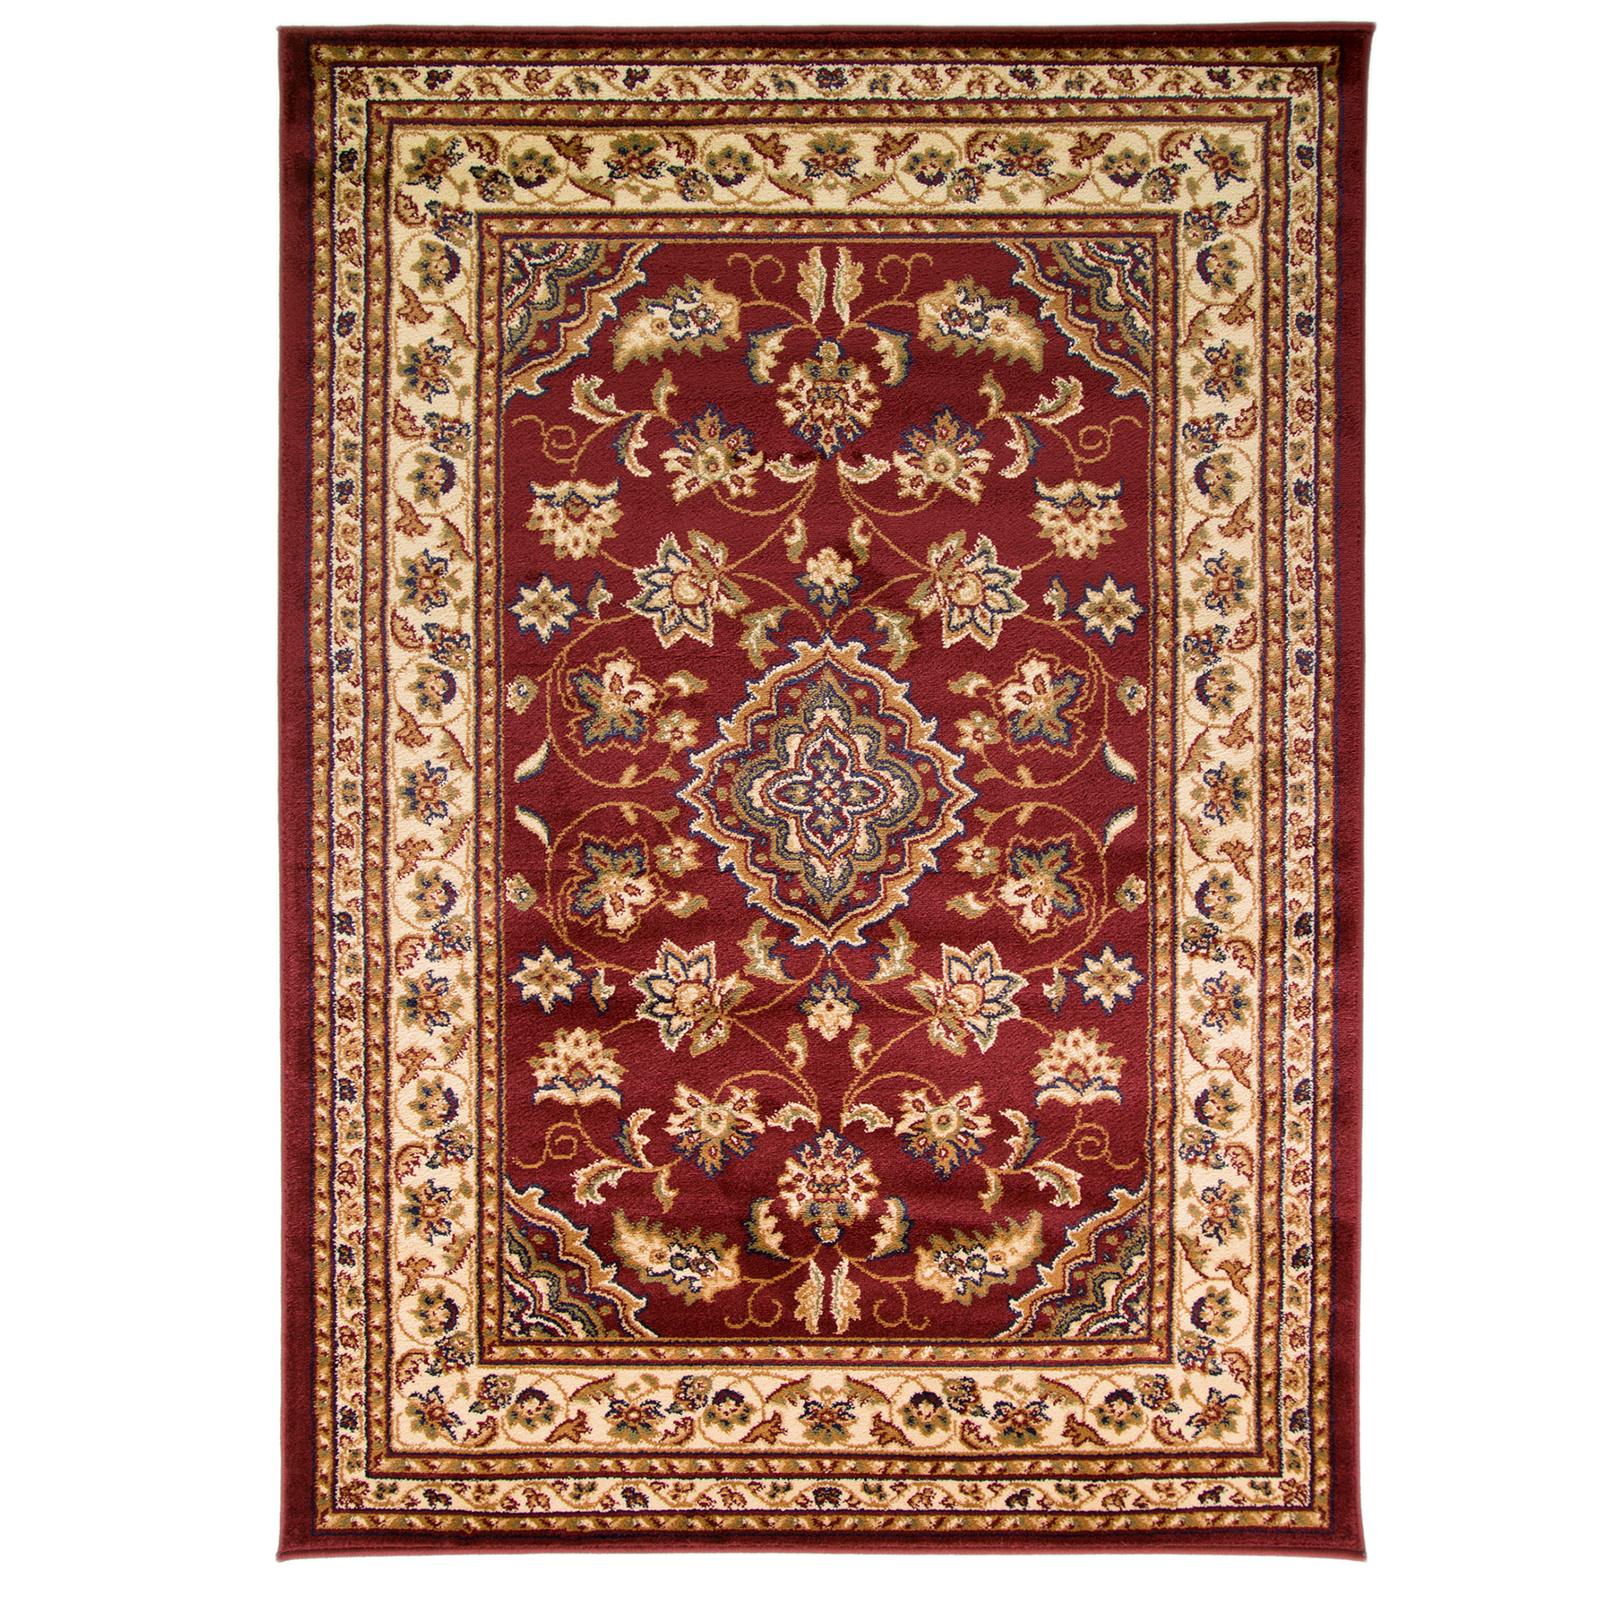 Living Room Persian Rug: Traditional Persian Inspired Medallion Rug With